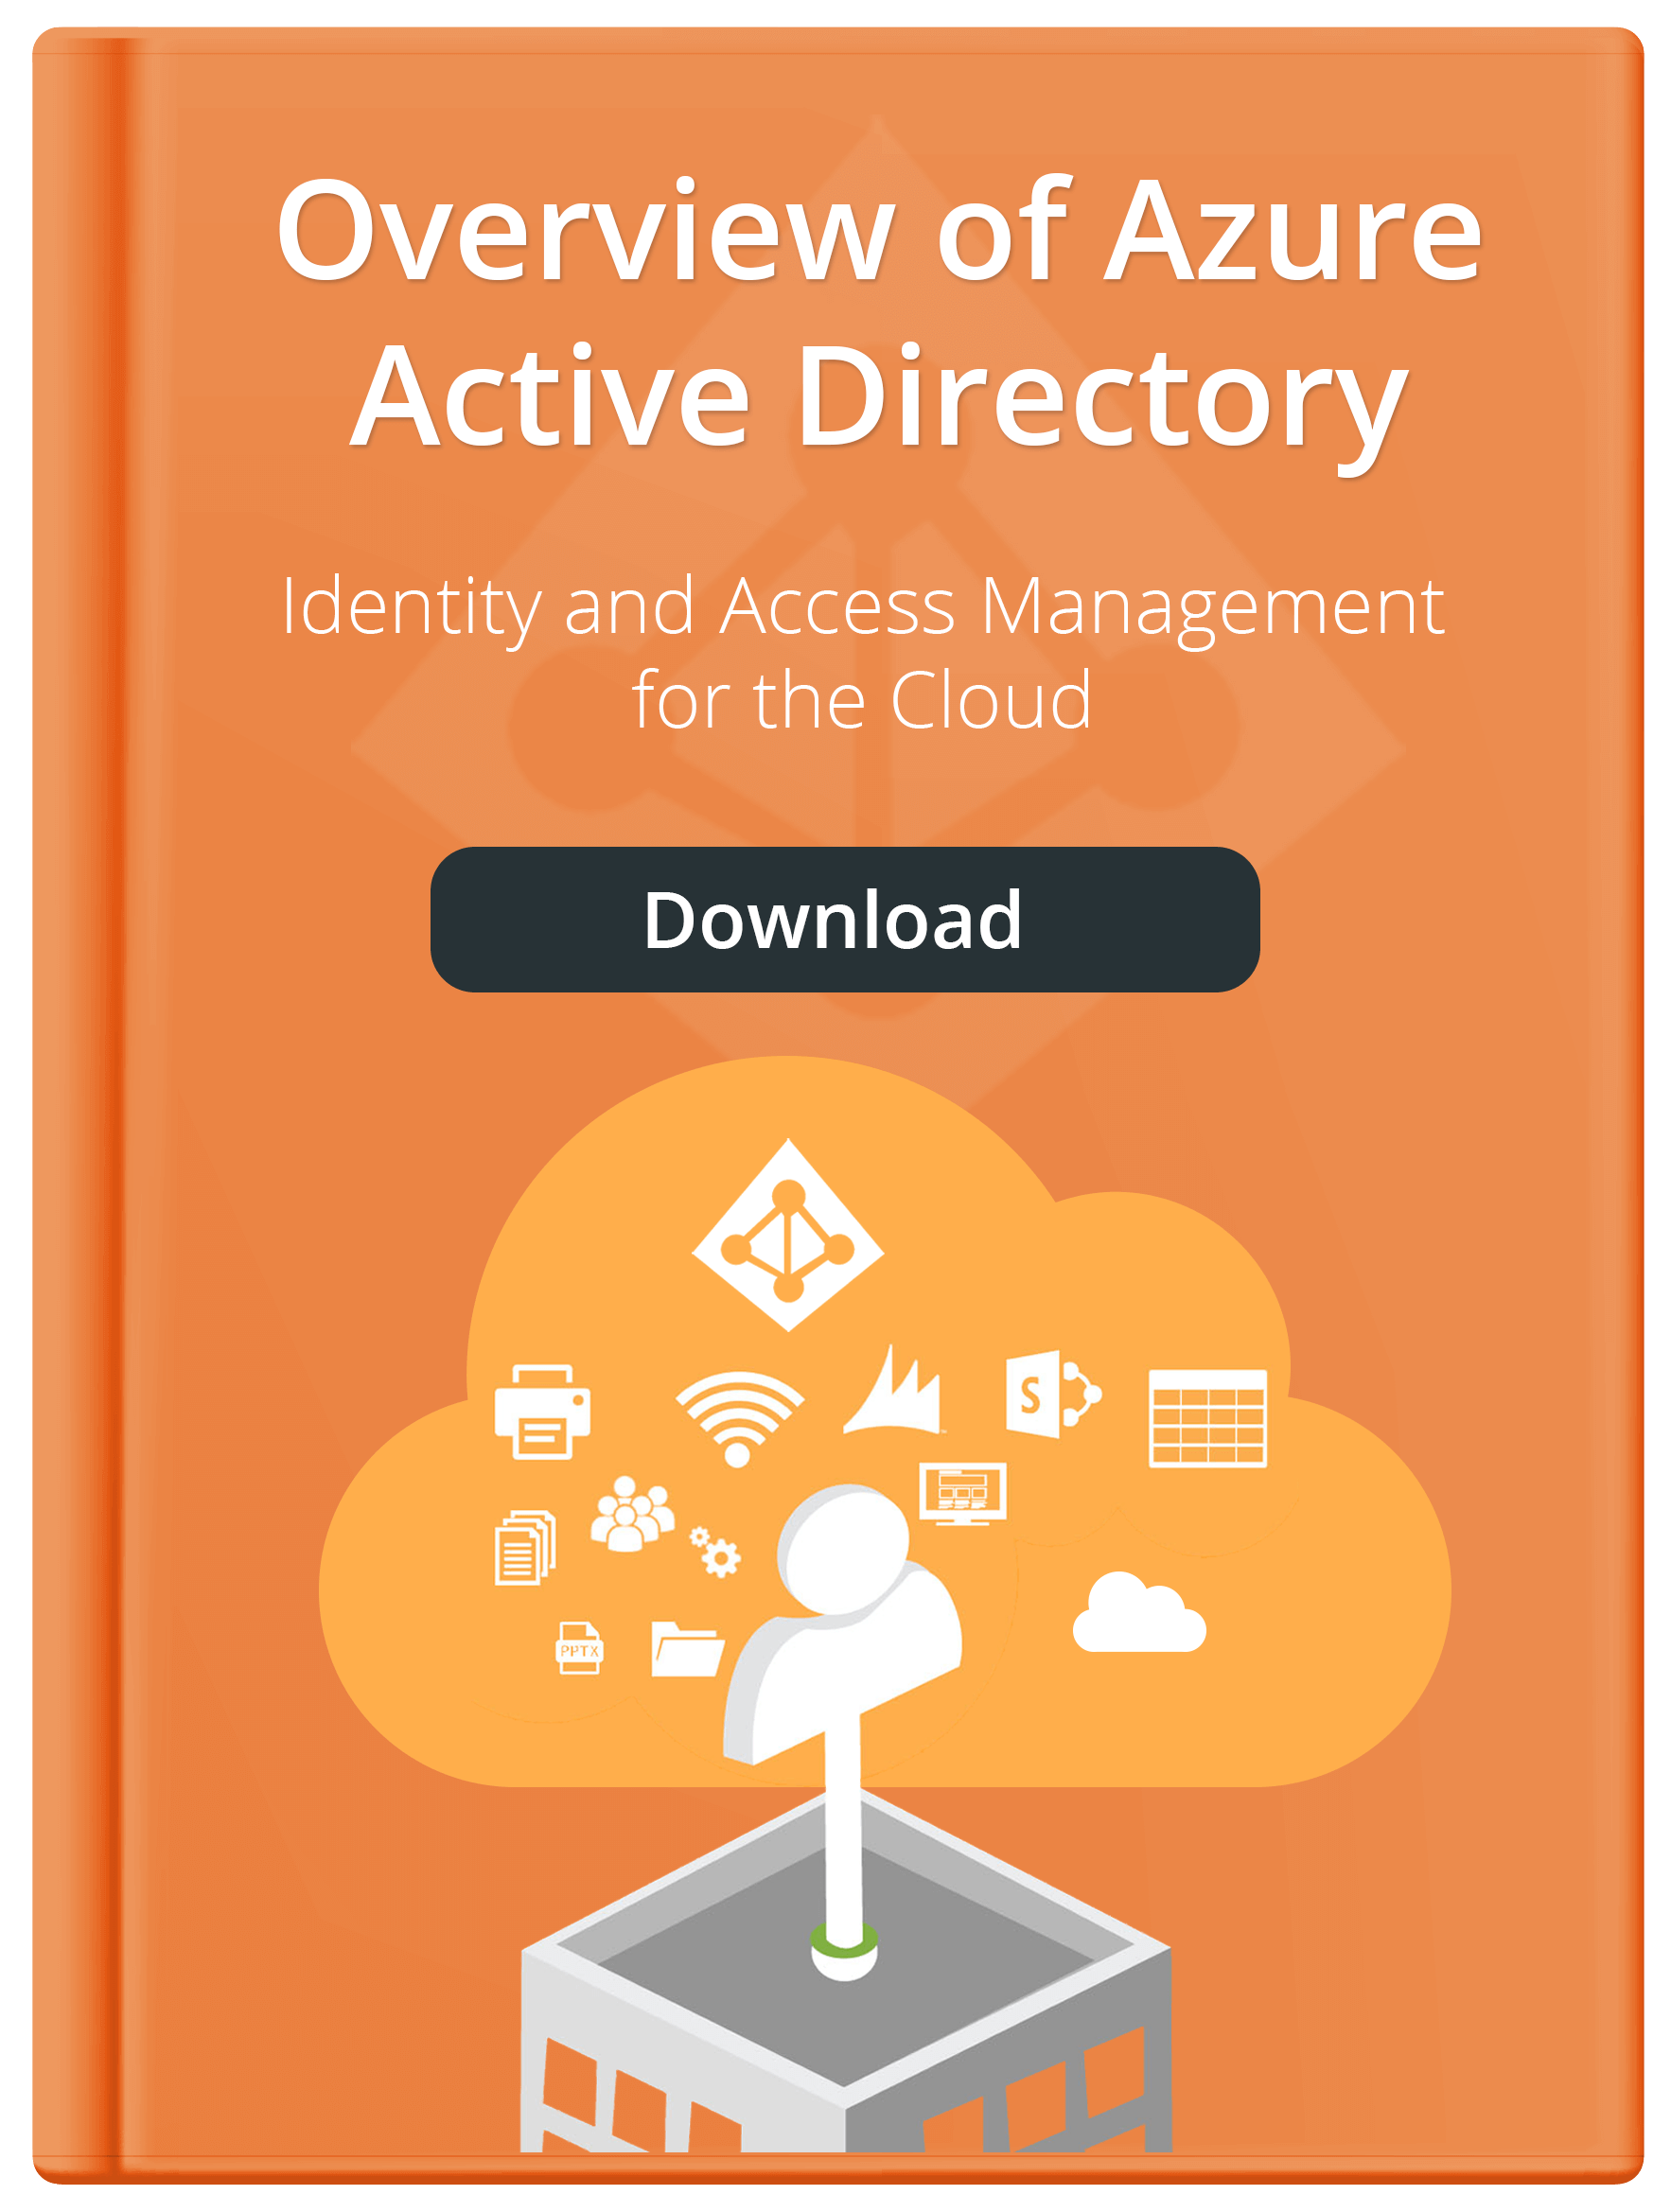 Overview of Azure Active Directory